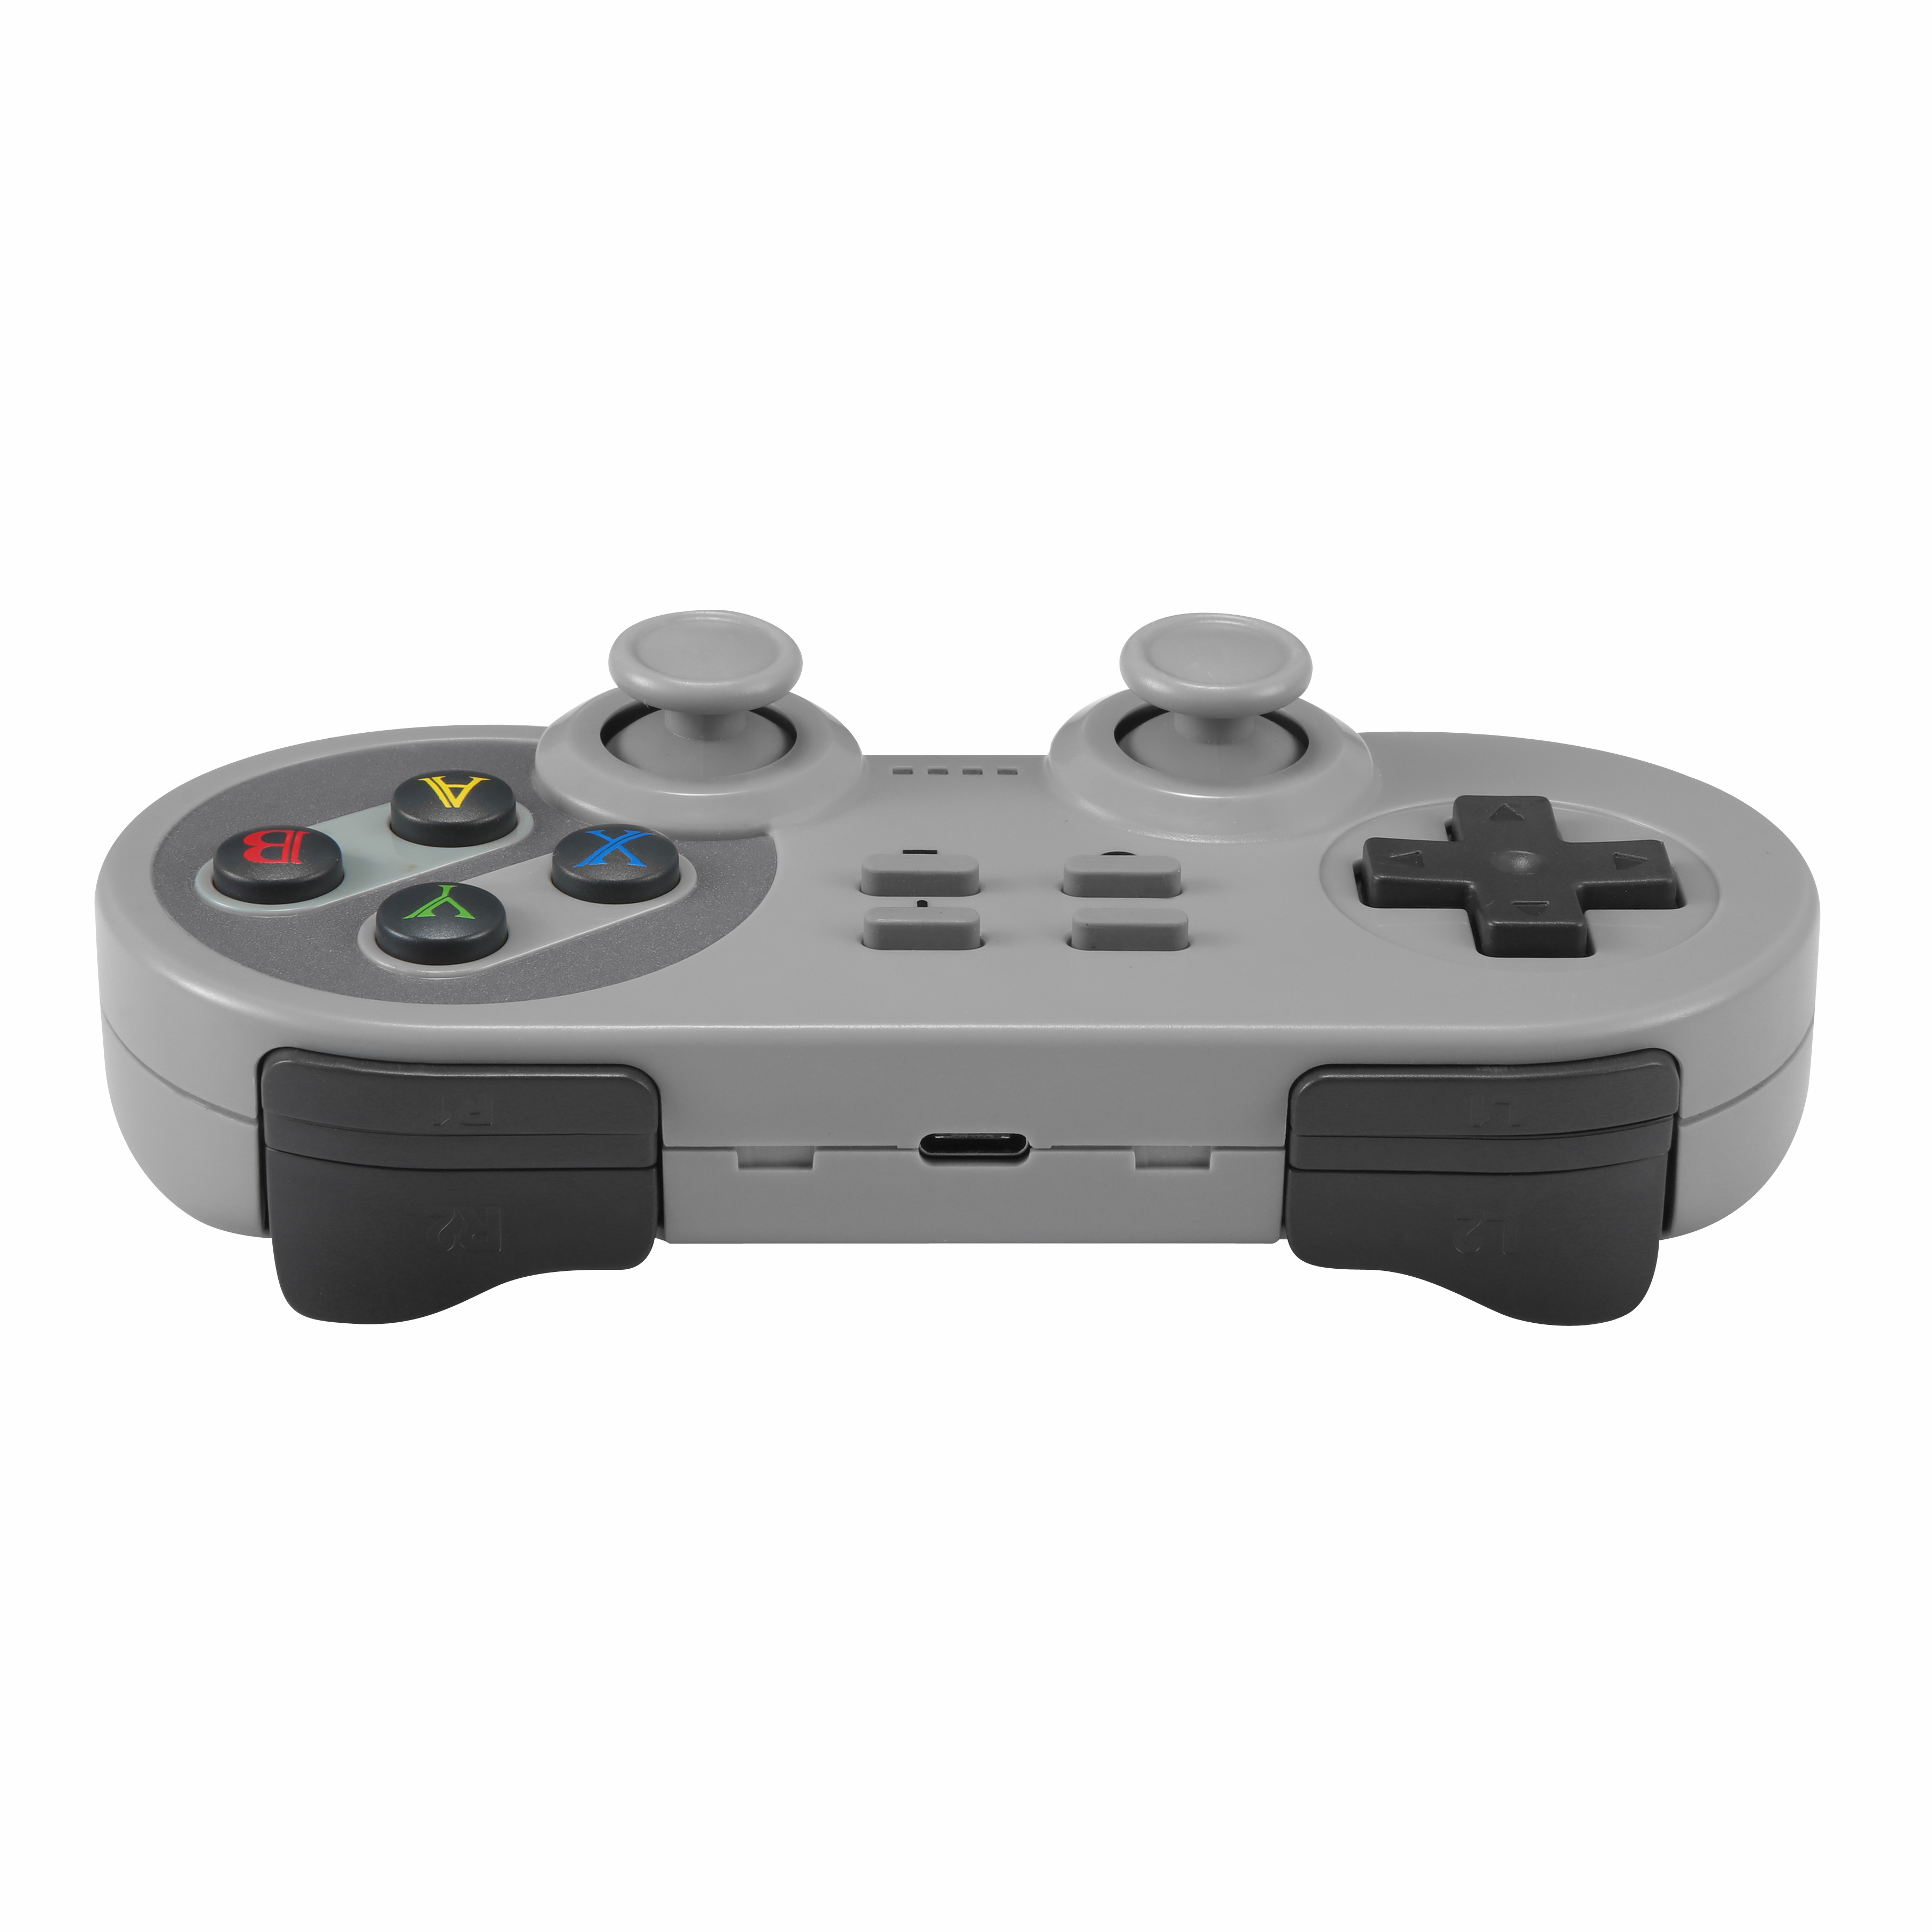 Factory direct supply NS03 new wireless connection game pad for mobile computer TV game controller for Playstation 3